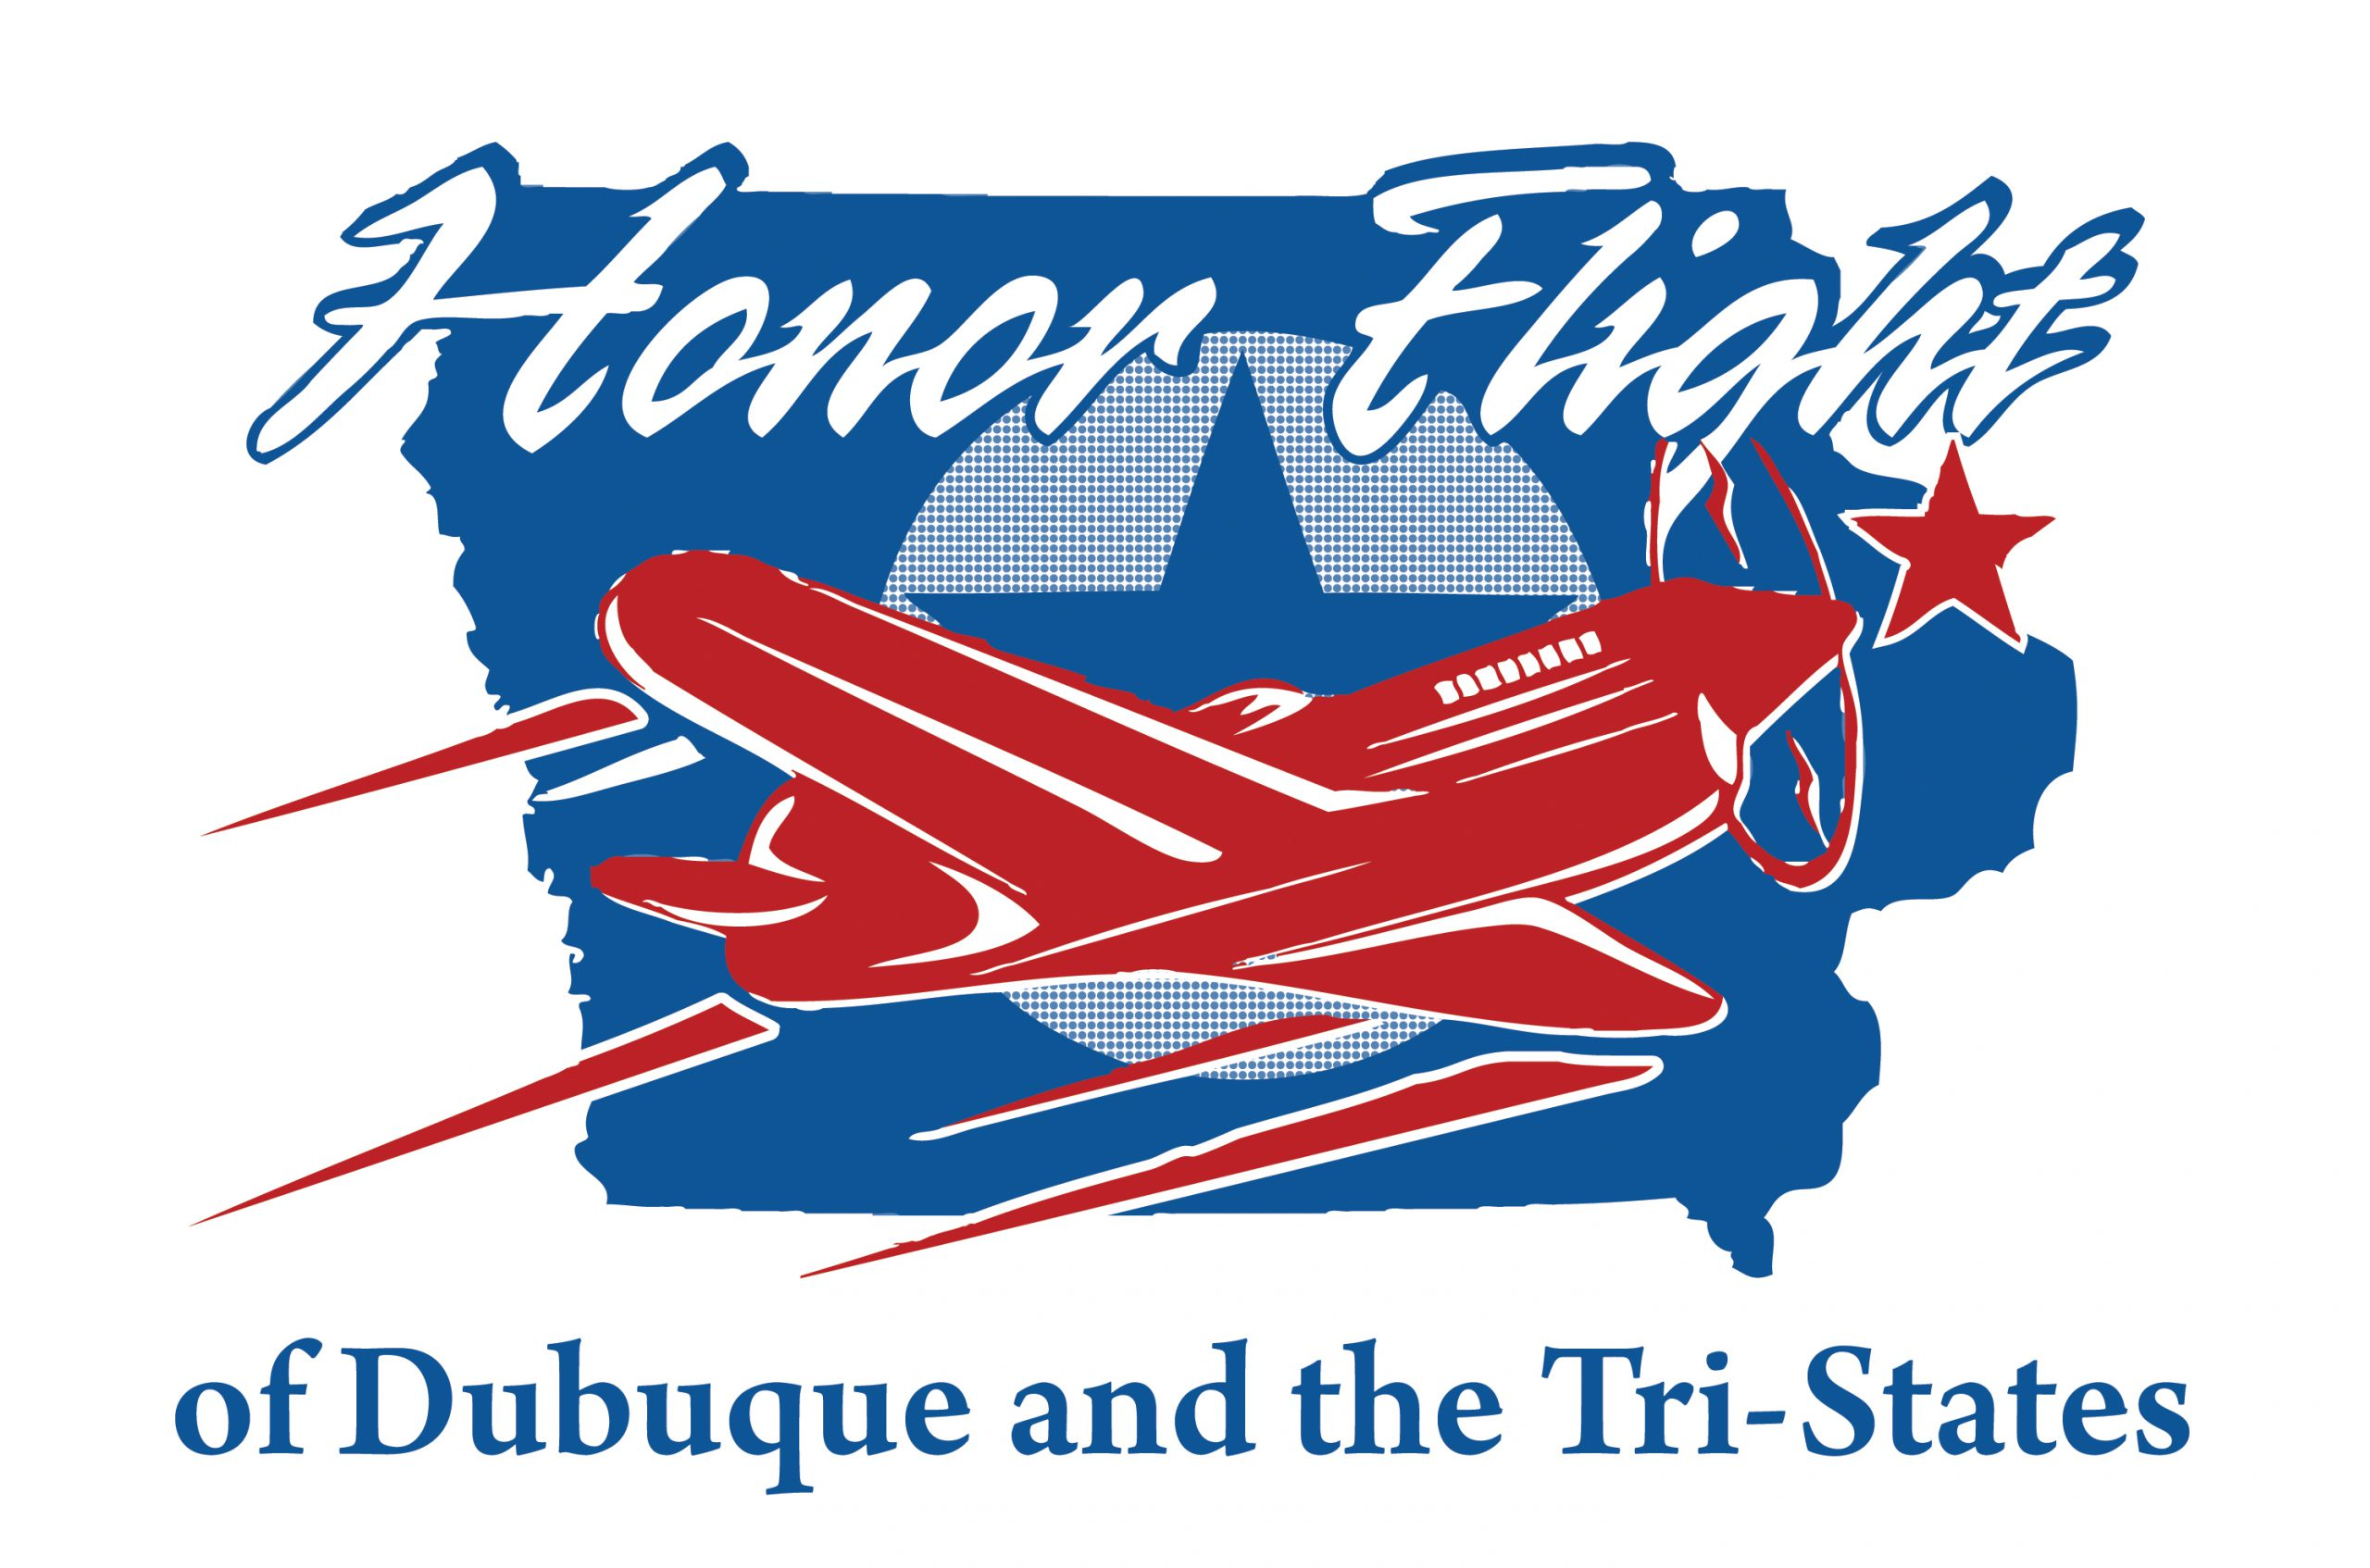 Honor Flight of Dubuque and the Tri-States